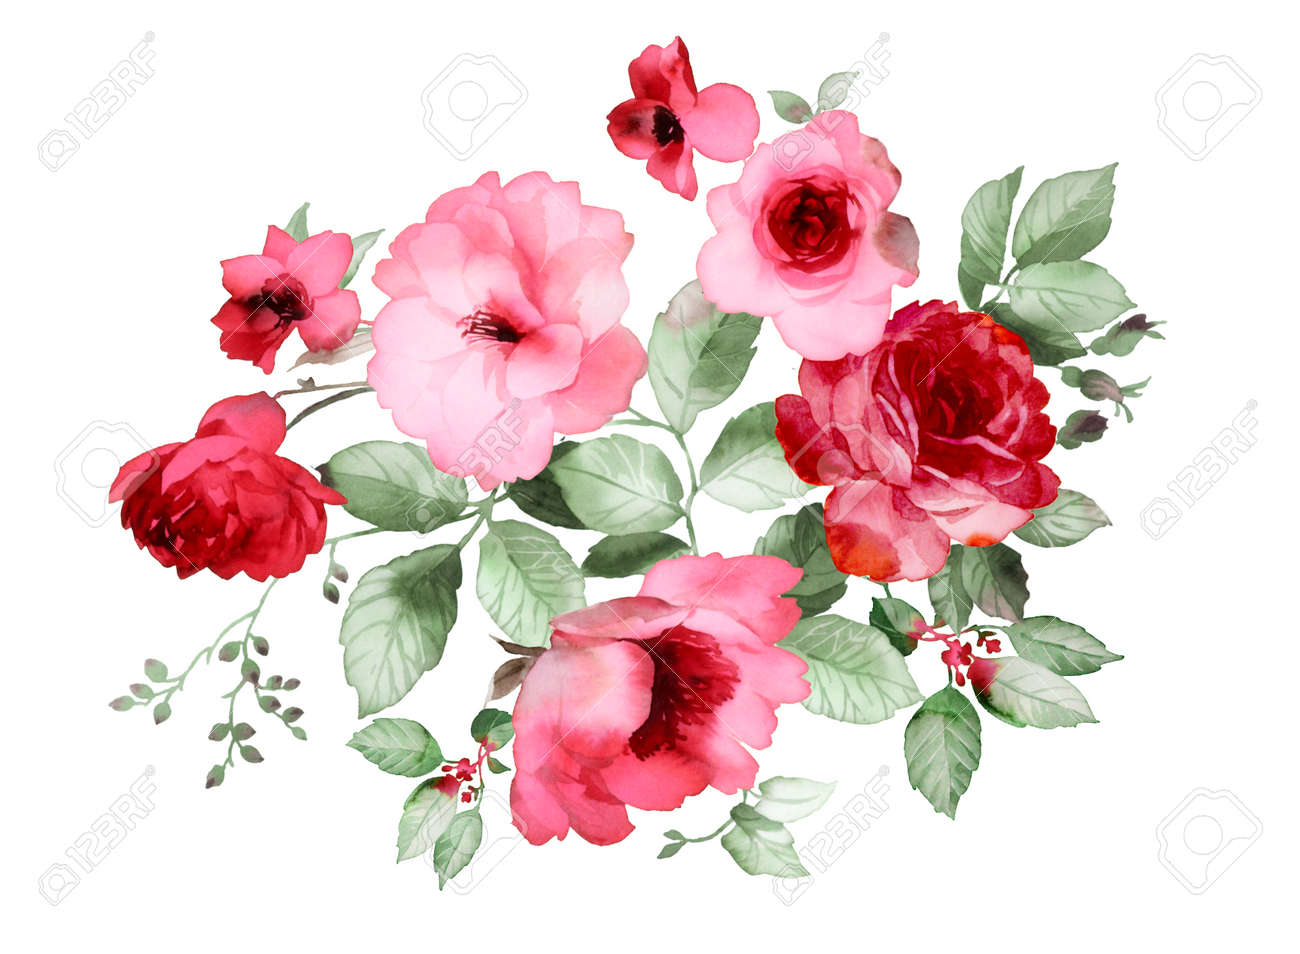 Flower stock photos royalty free flower images color illustration of flowers in watercolor paintings mightylinksfo